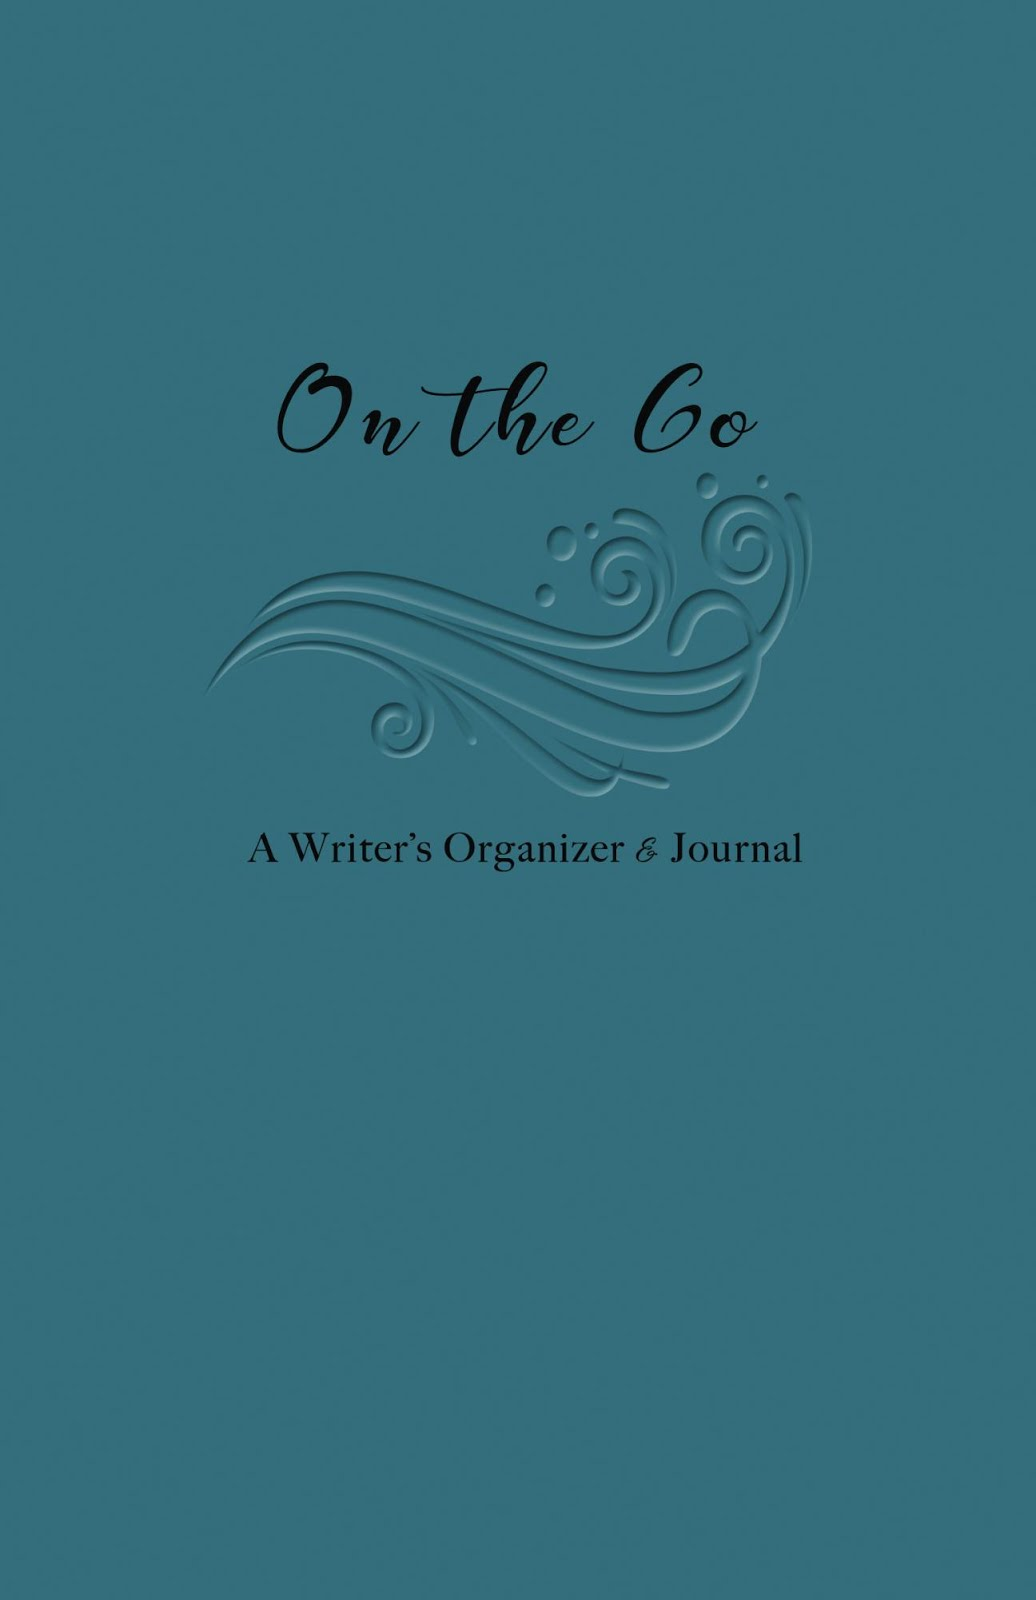 Writers Organizer & Journal